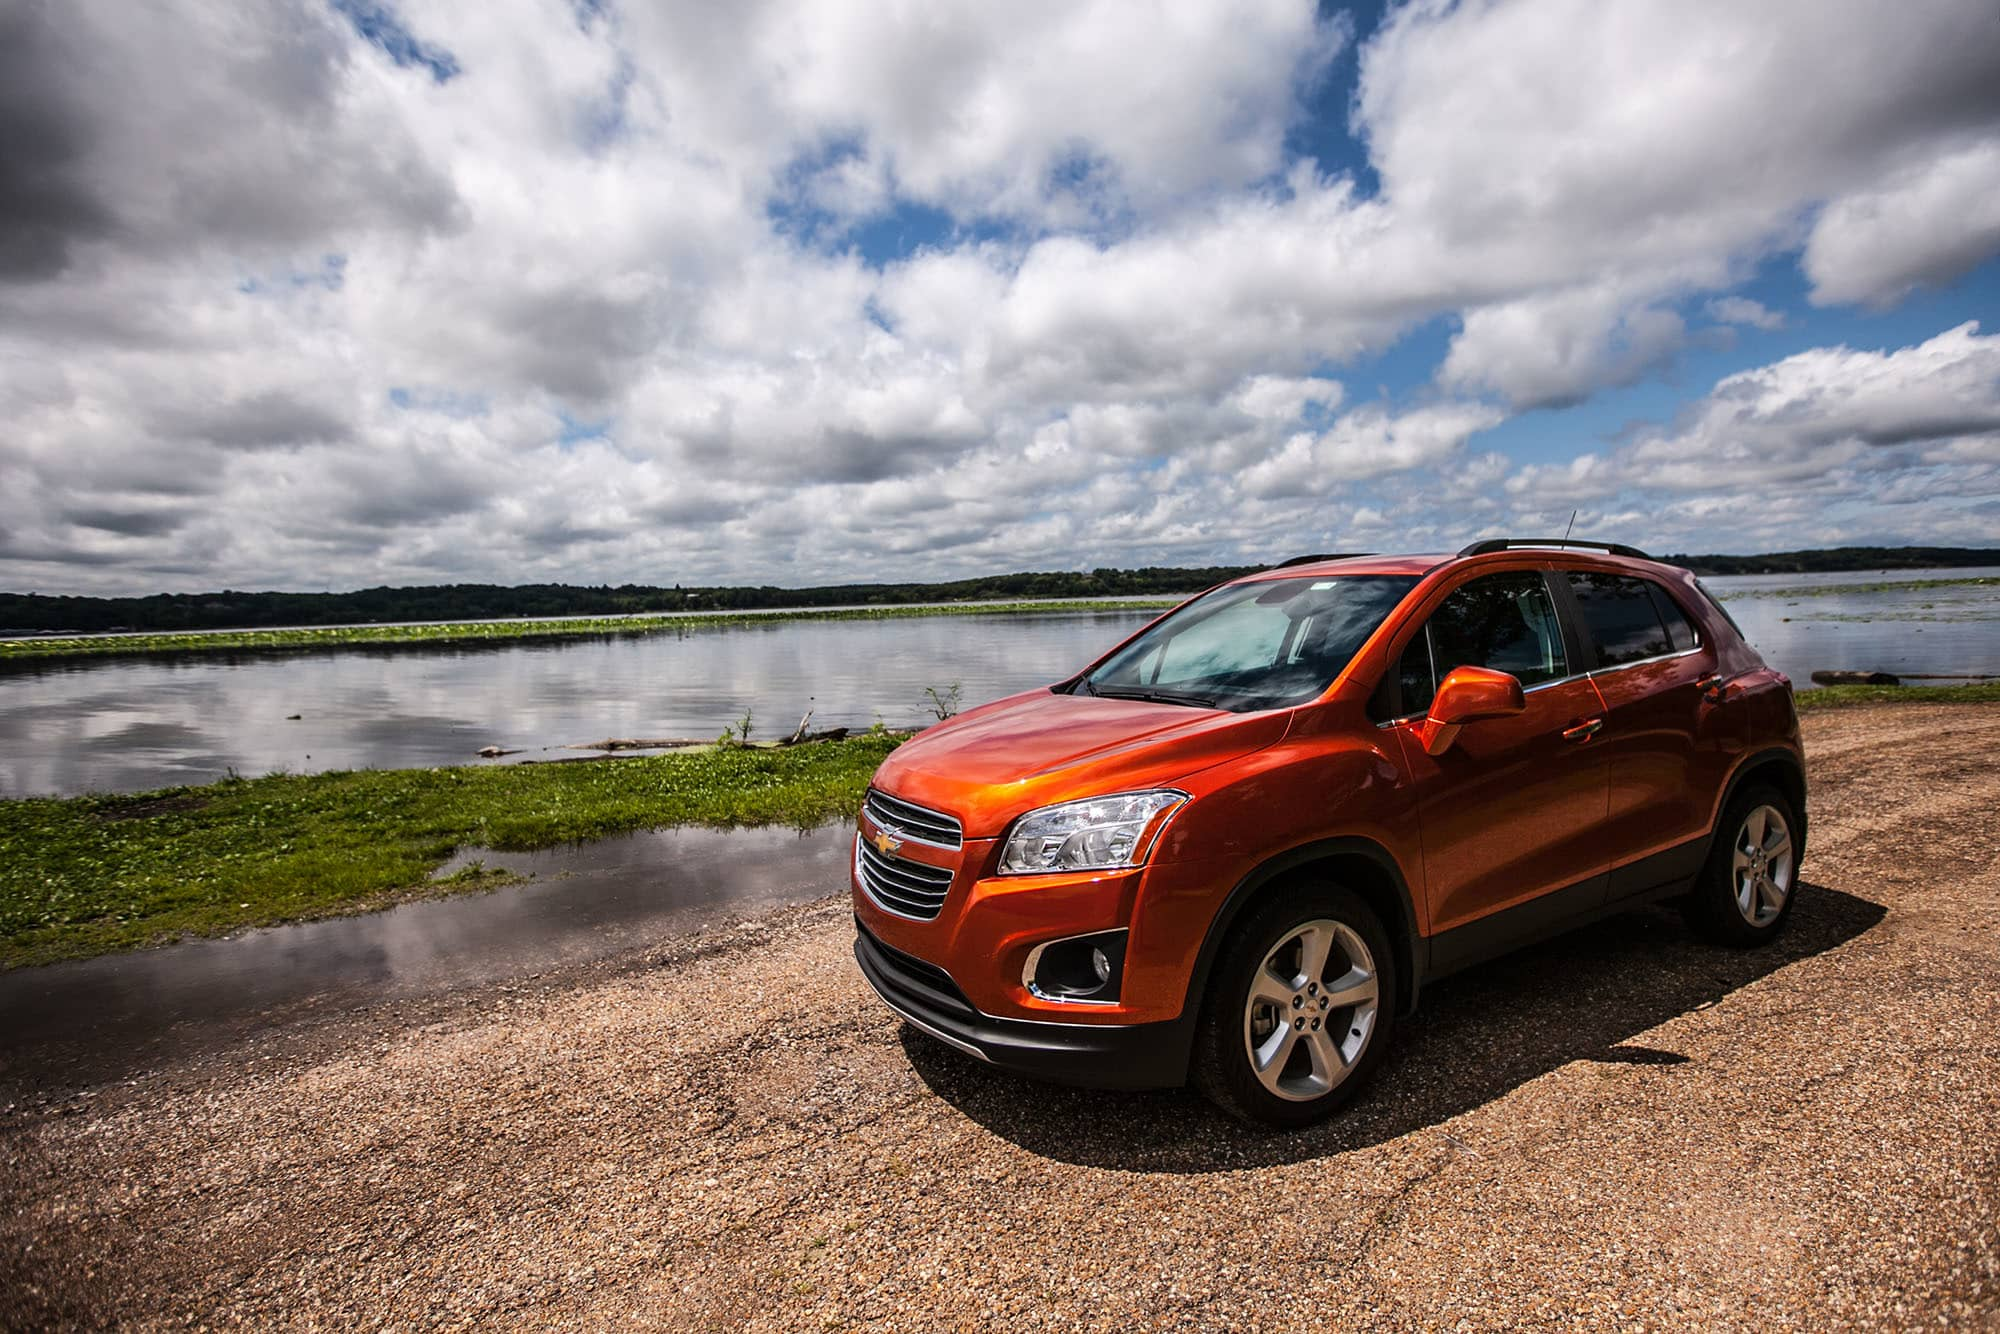 Chevy Trax on the Missisippi RIver